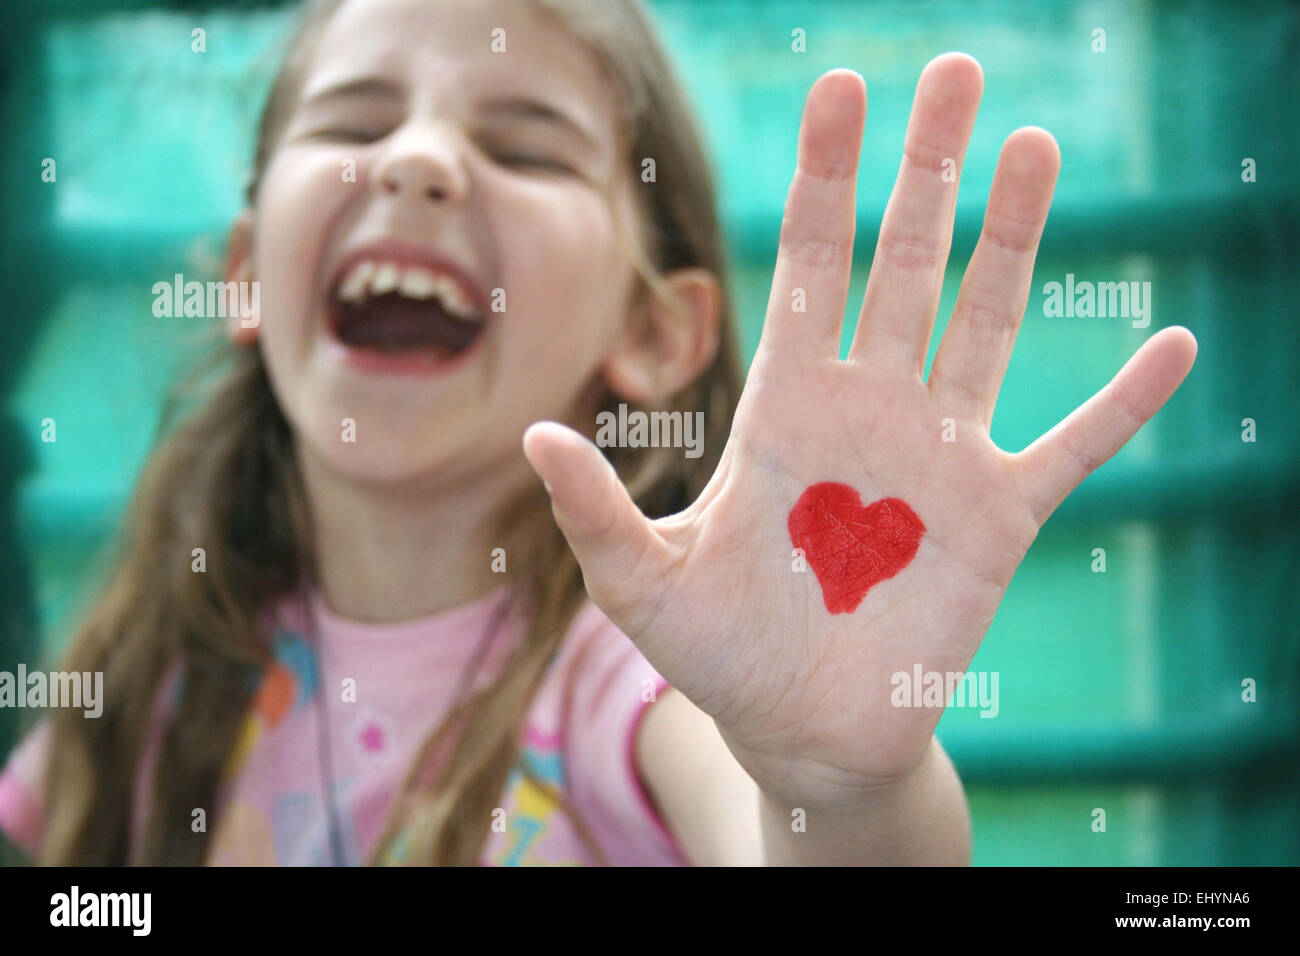 Fille avec un coeur dessiné sur la paume de sa main Photo Stock